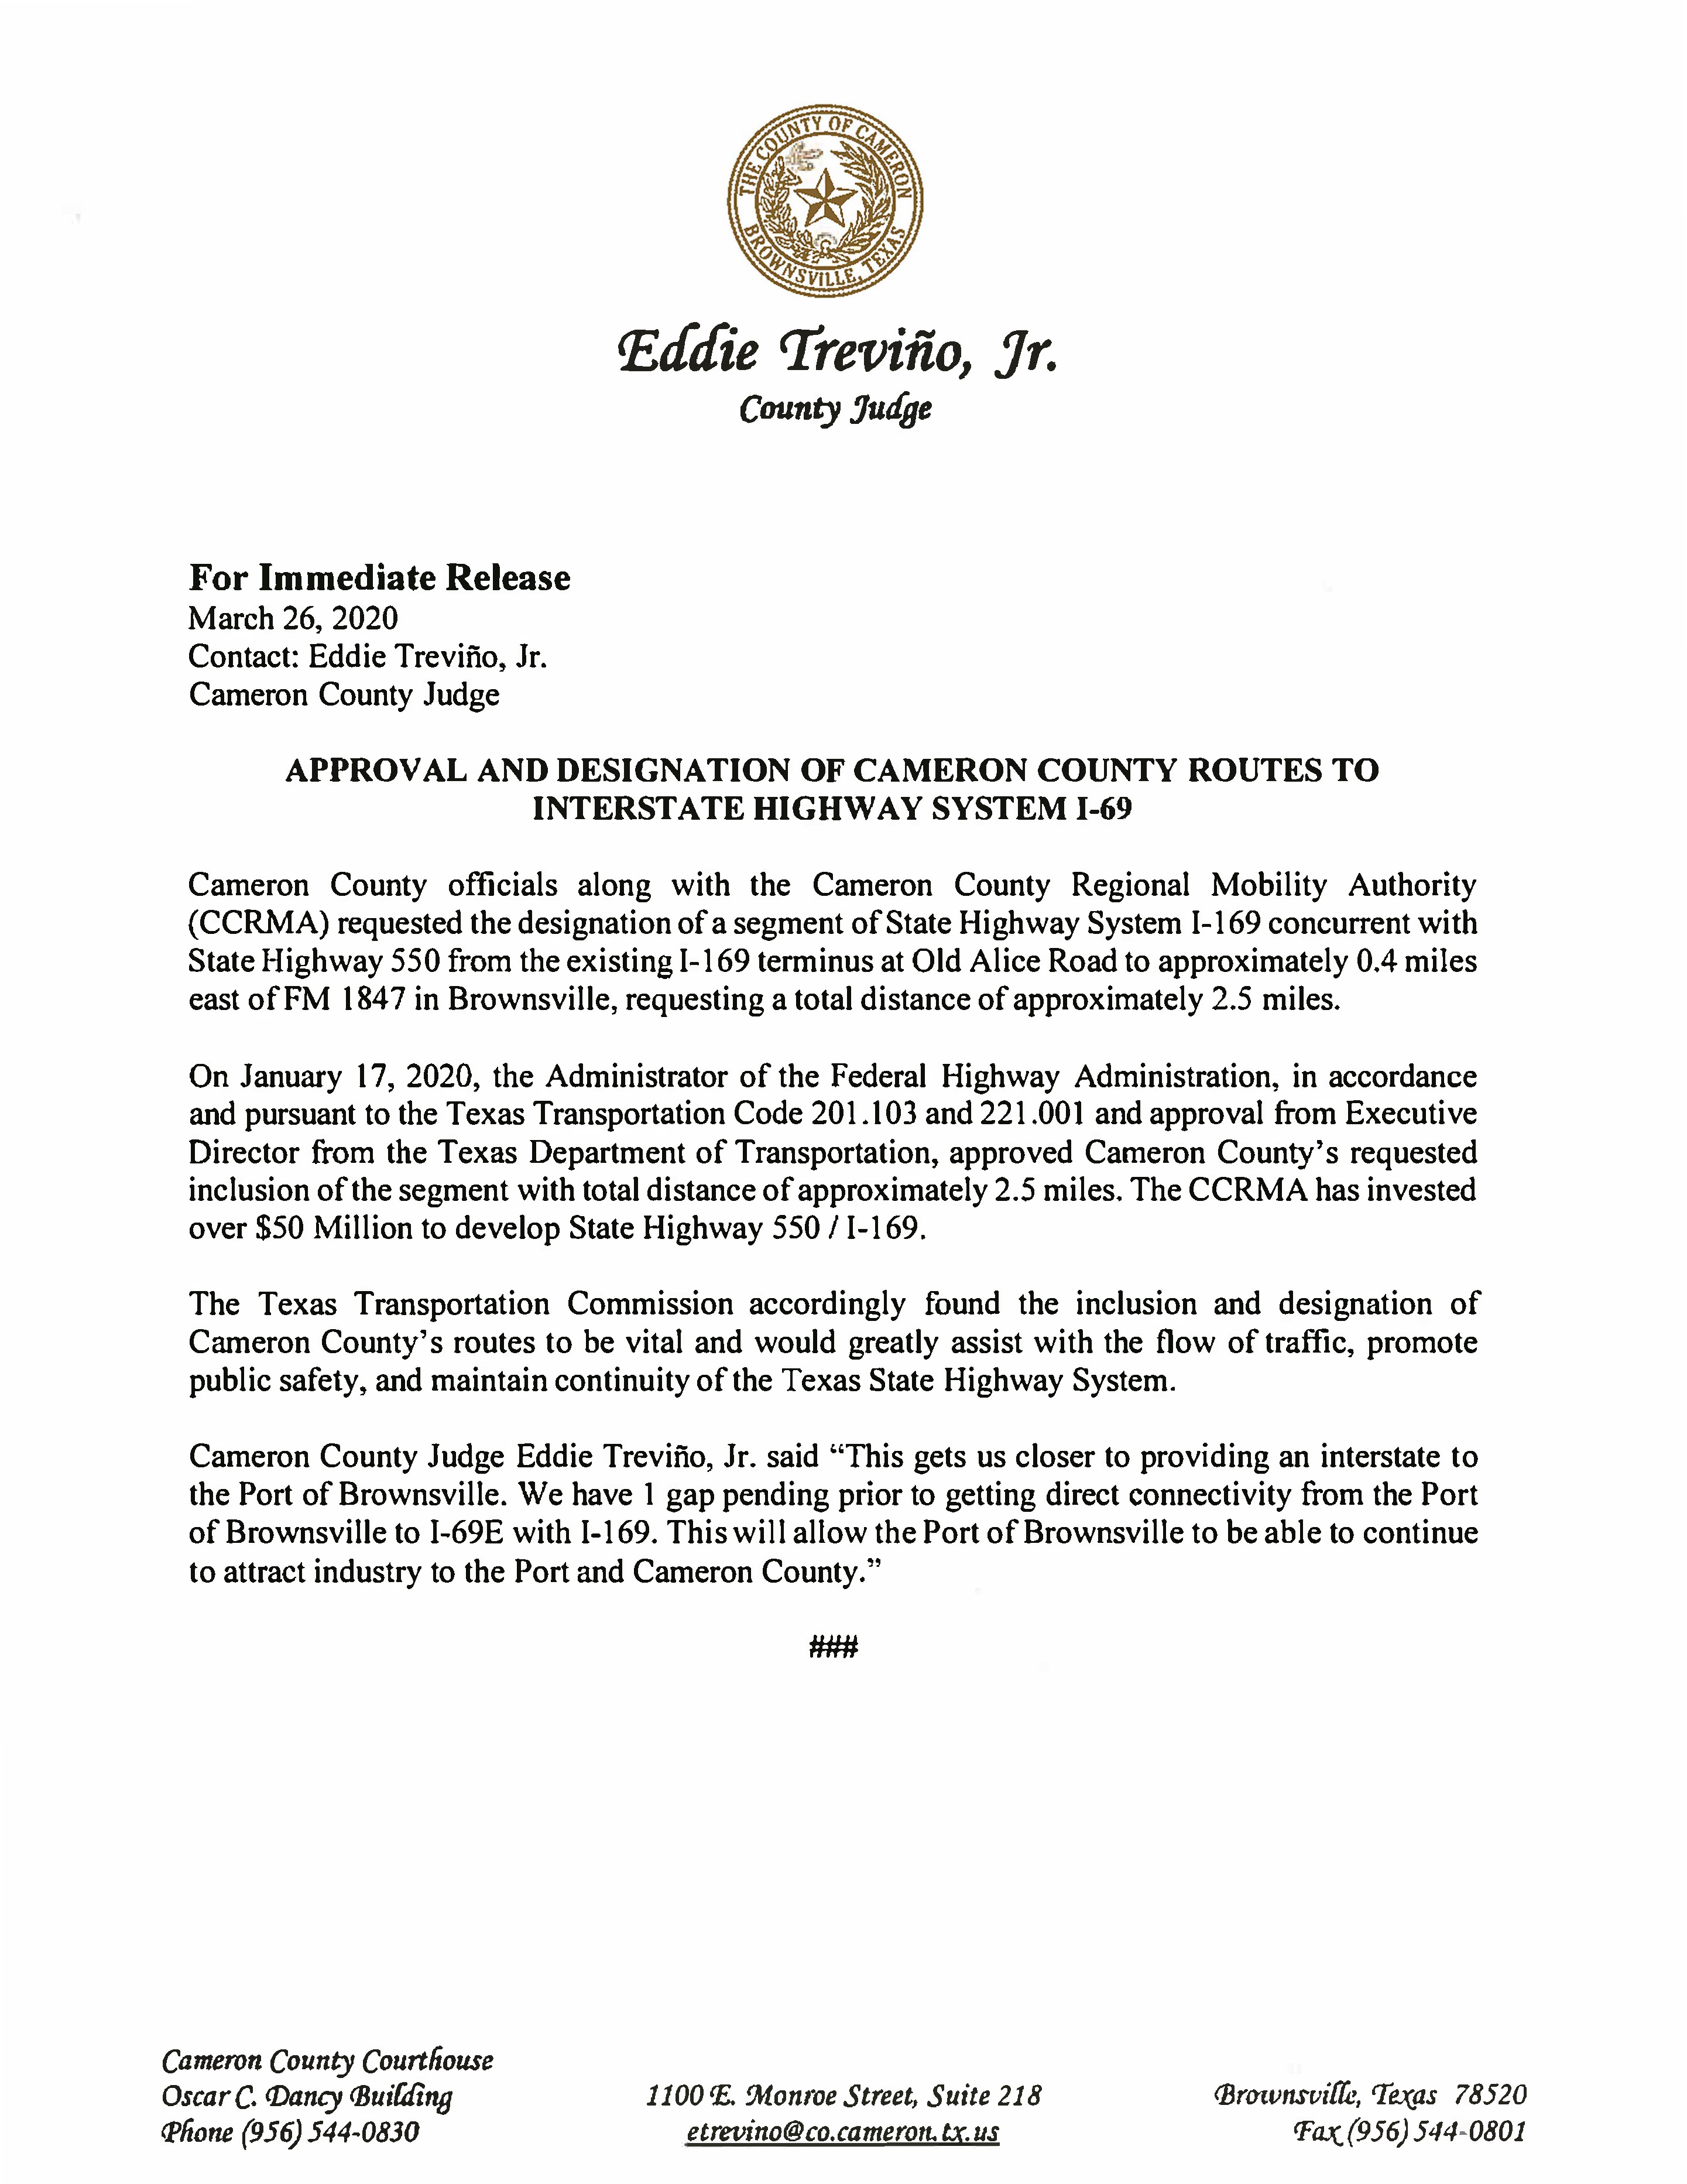 03 26 2020 For Immediate Release Approval and Designation of Cameron County Routes to Interstate Highway System I 69 2 Page 1 - Cameron County Housing Authority Application